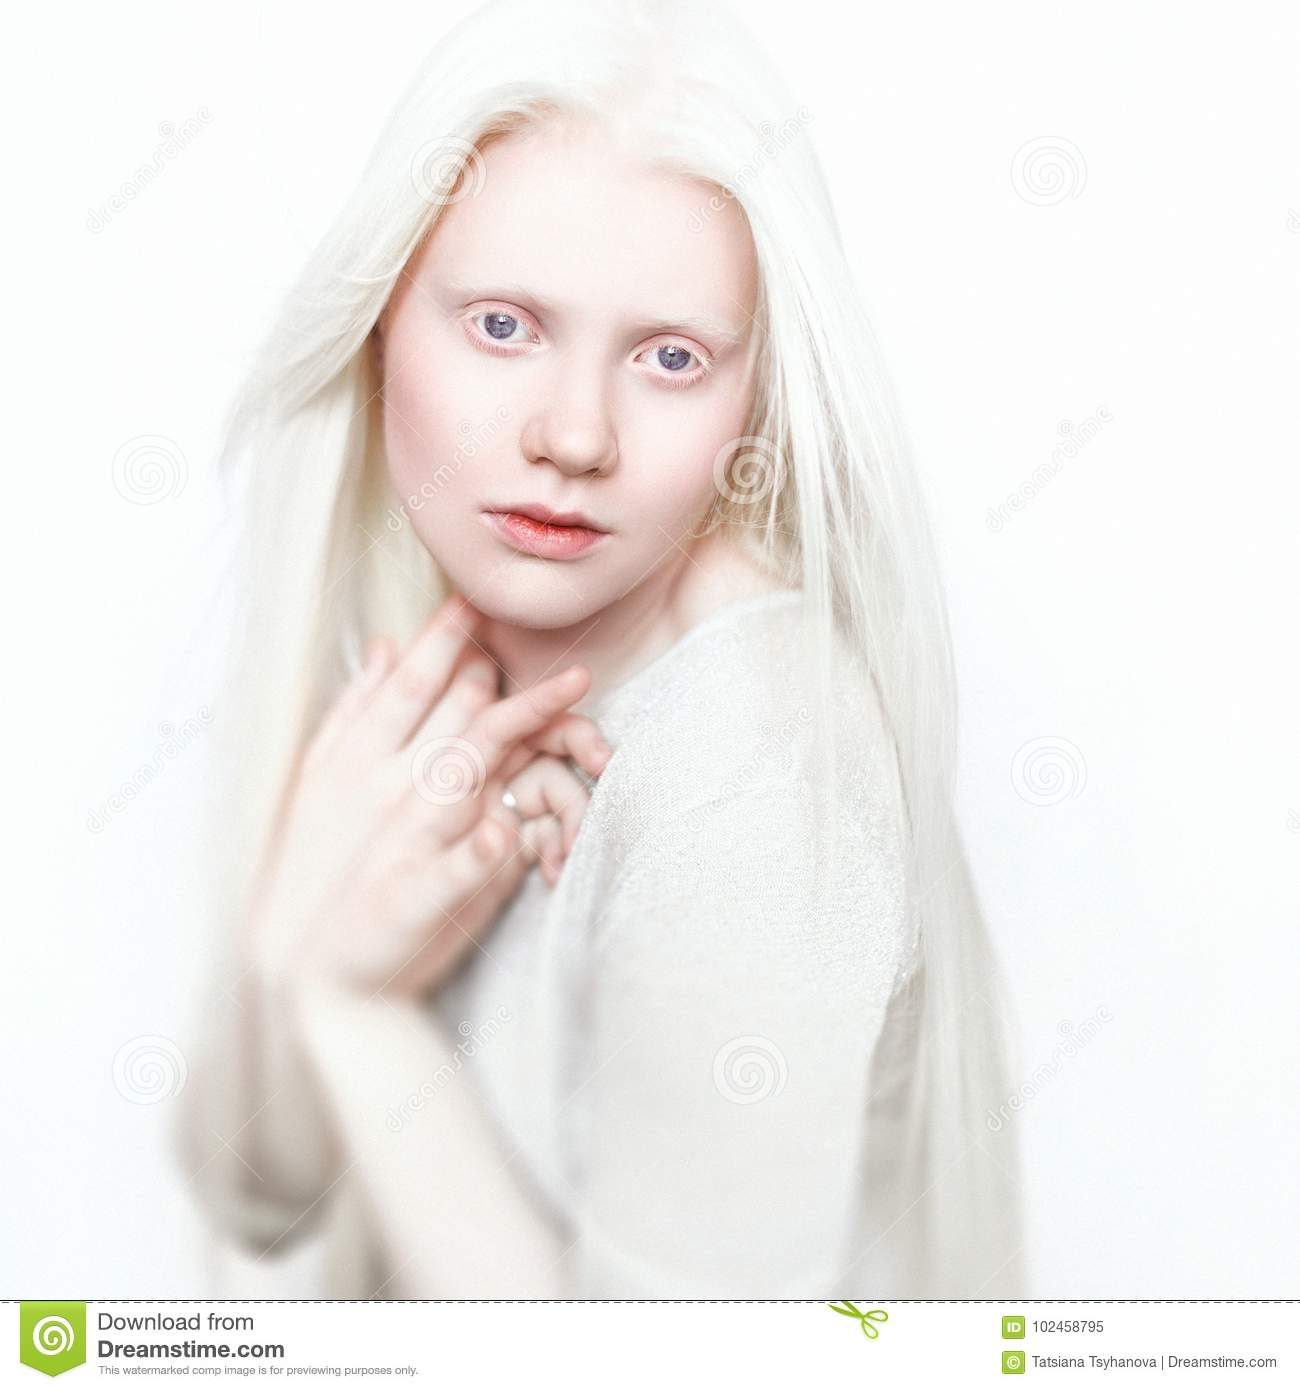 Albino woman with white pure skin and white hair. Photo face on a light background. Portrait of the head. Blonde girl